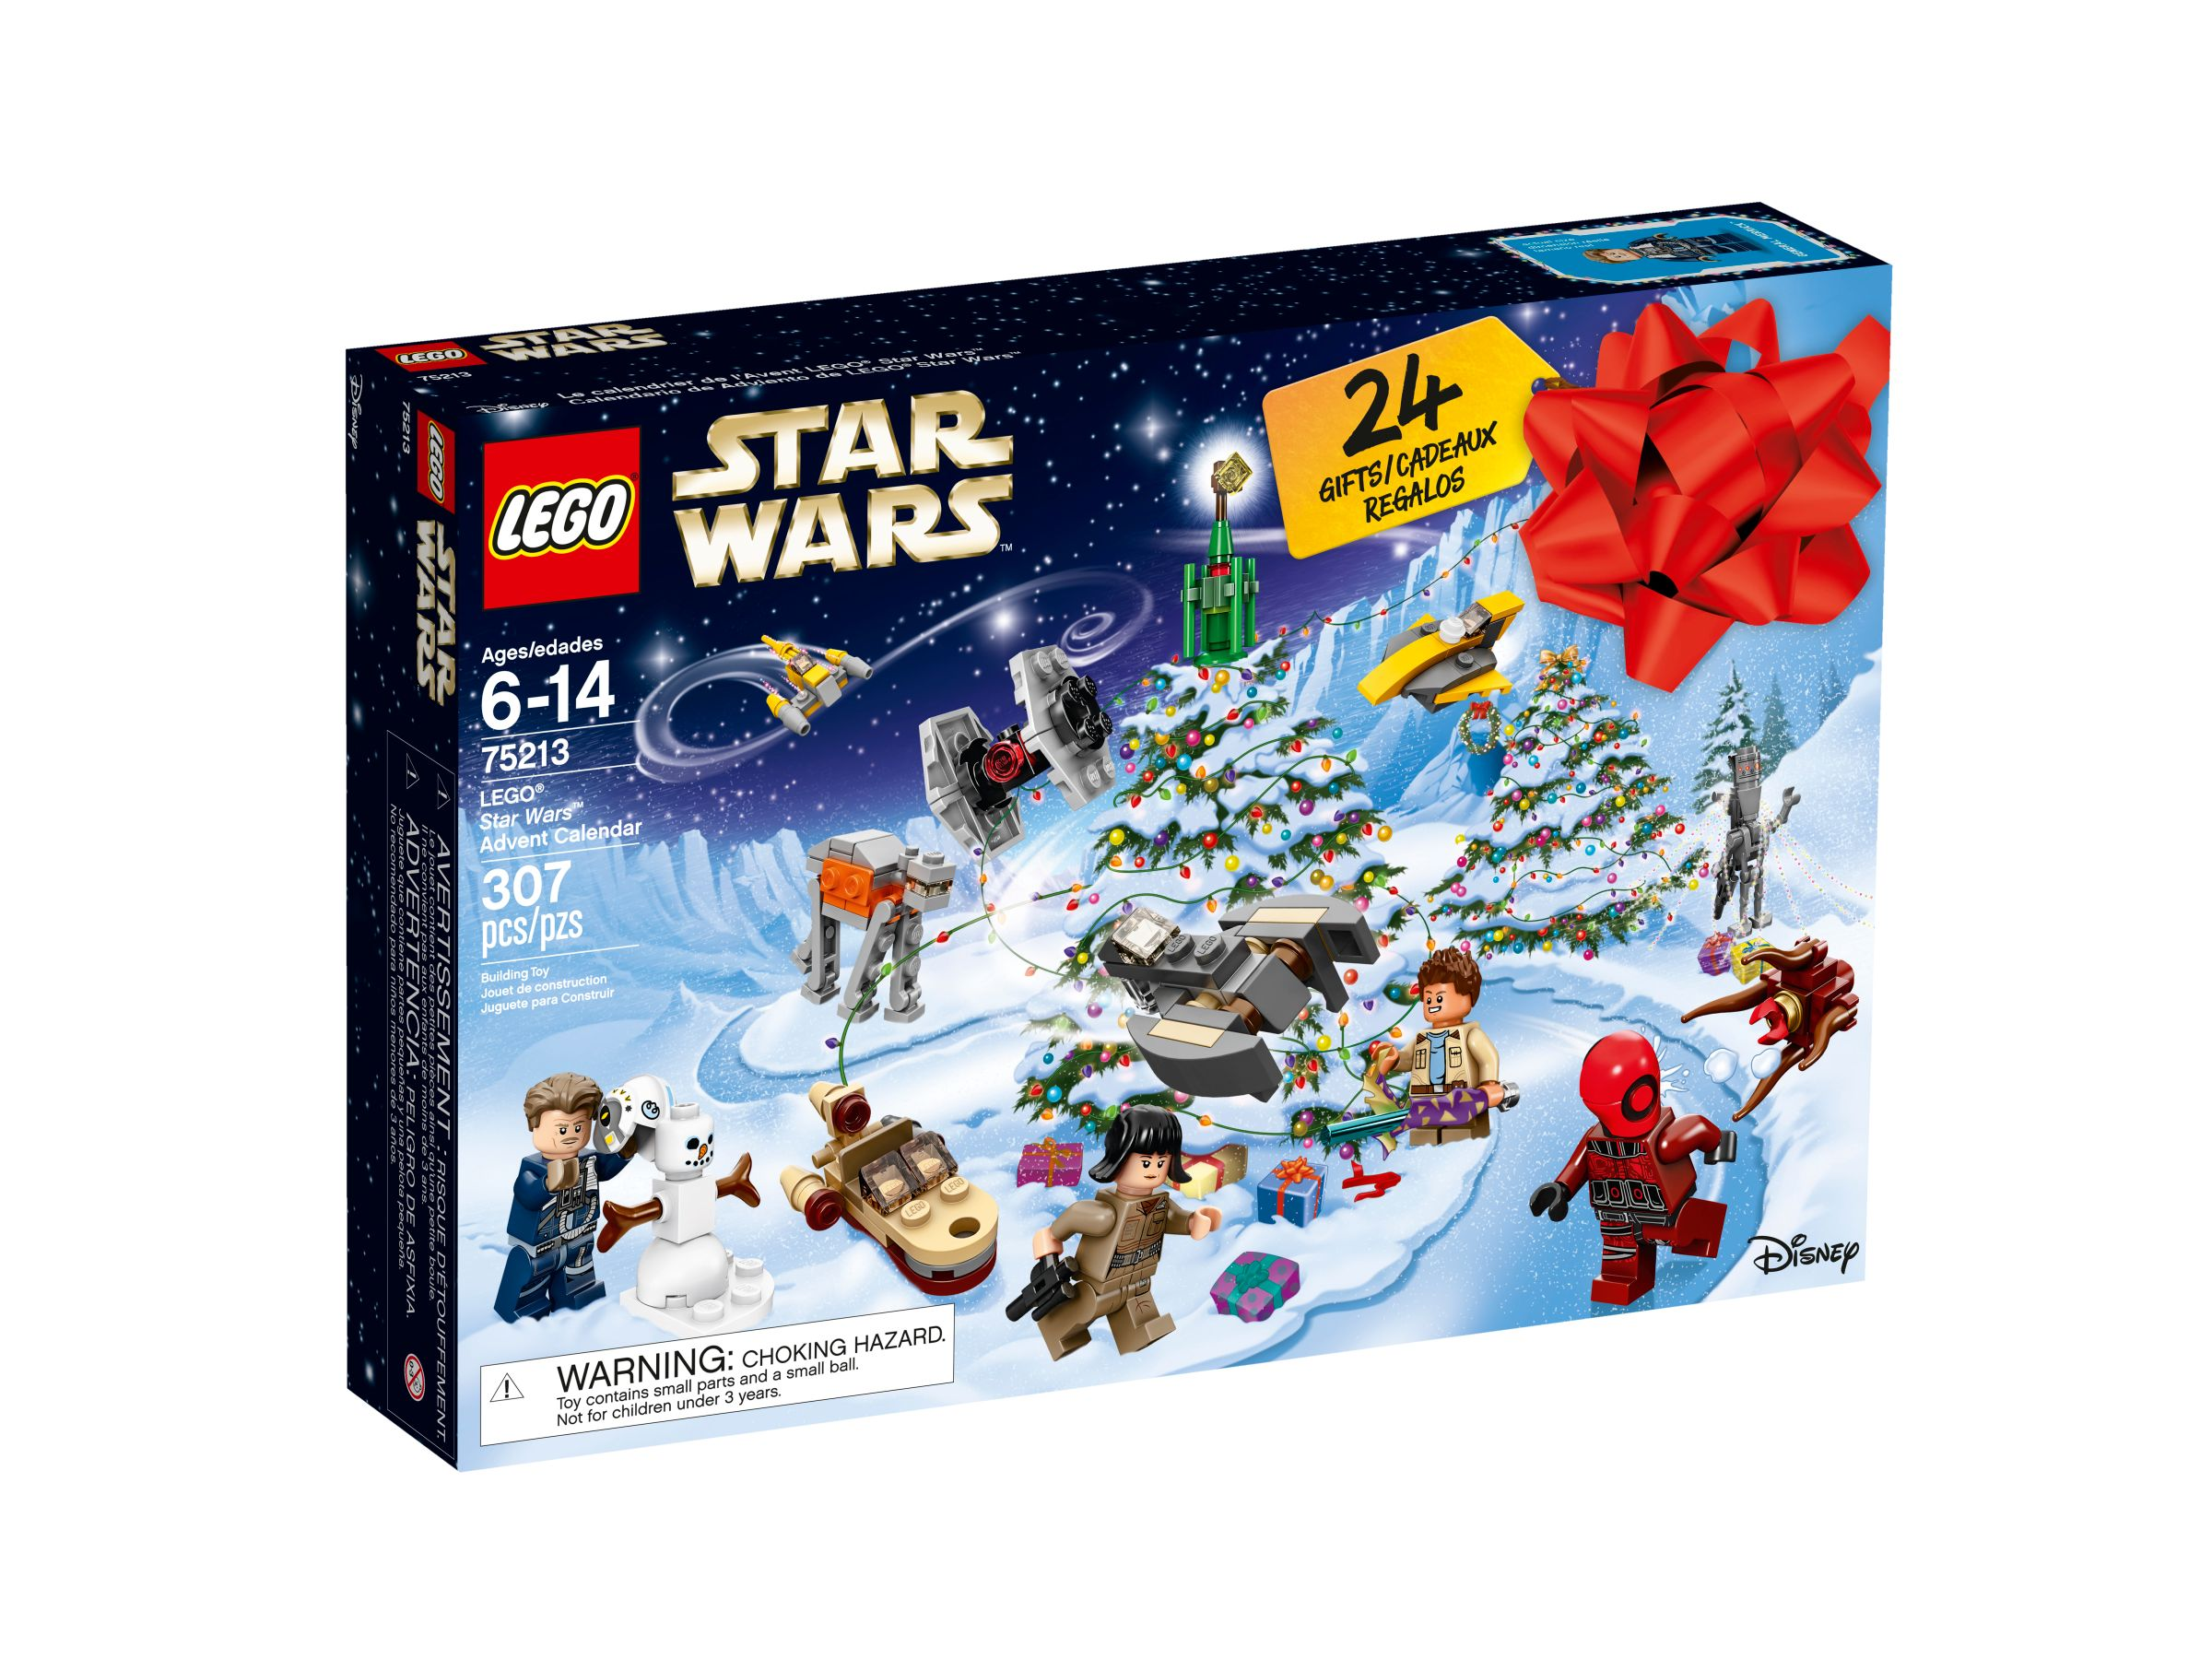 LEGO Star Wars 75213 Star Wars Adventskalender 2018